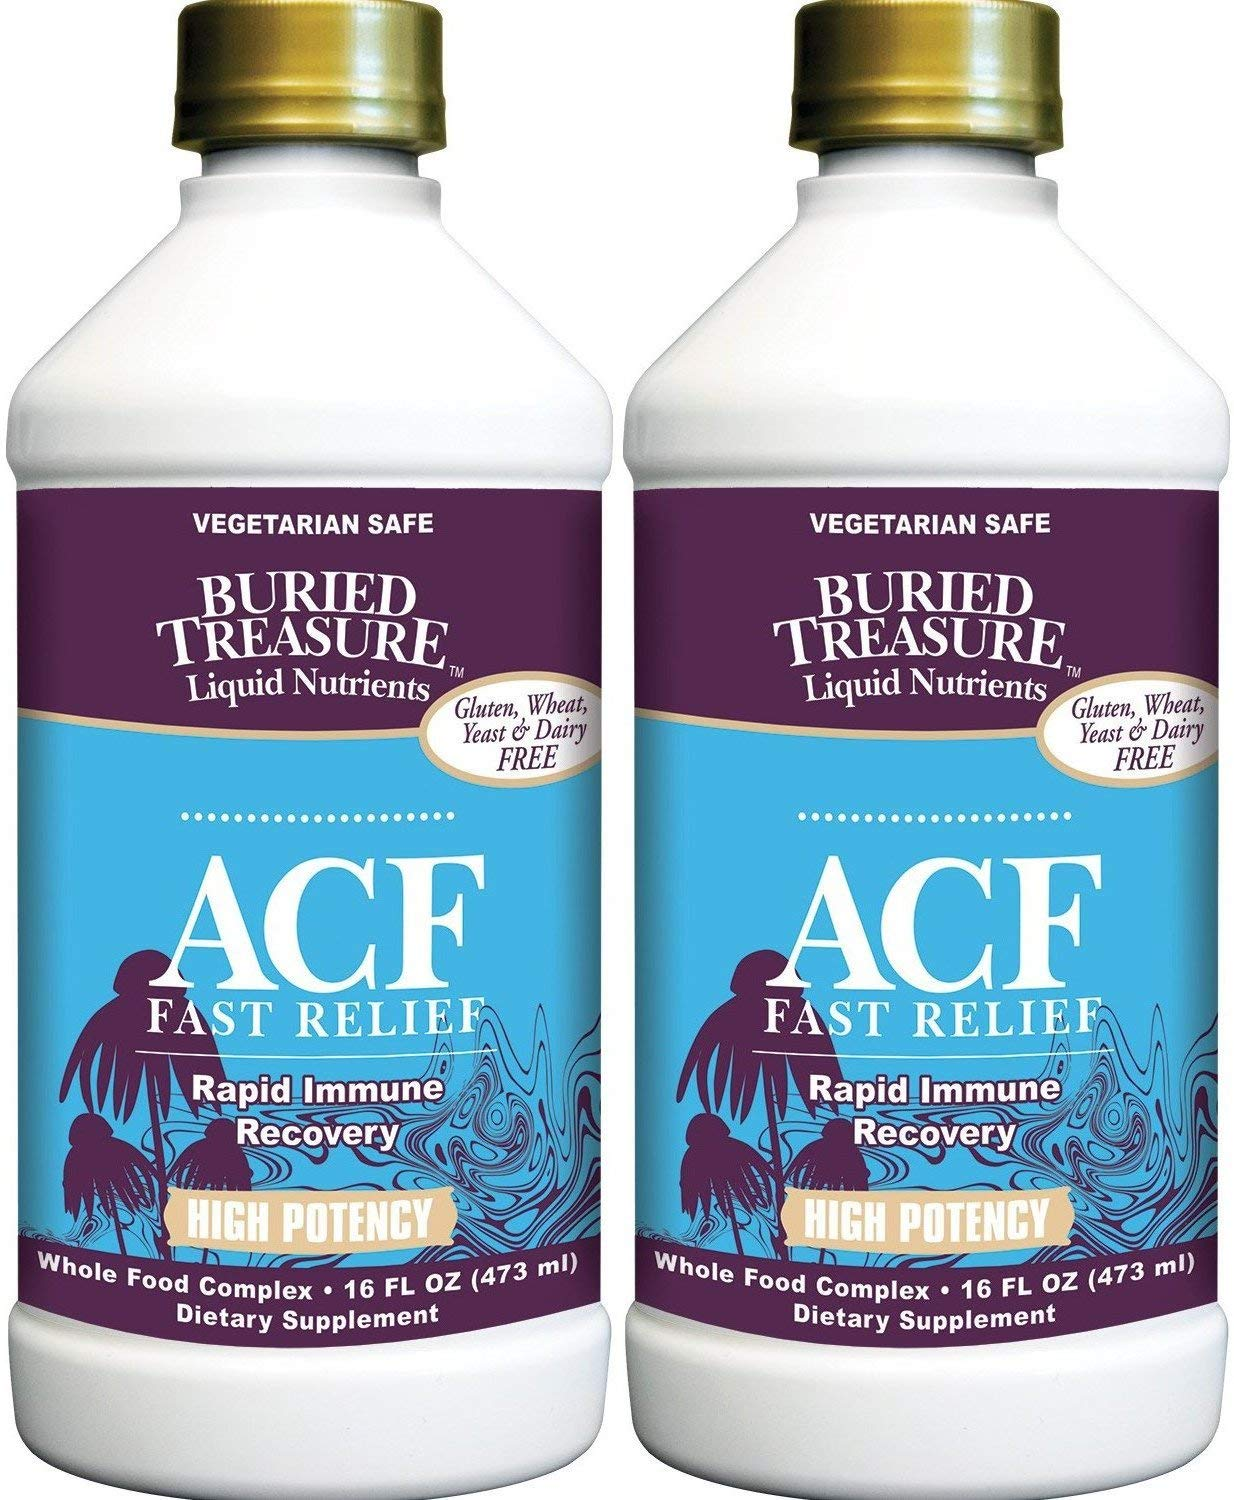 Liquid Nutrients ACF Fast Relief Rapid Immune Recovery (Pack of 2), Vegetarian Safe, Whole Food Complex, 16 fl oz by Natural Beauty Planet